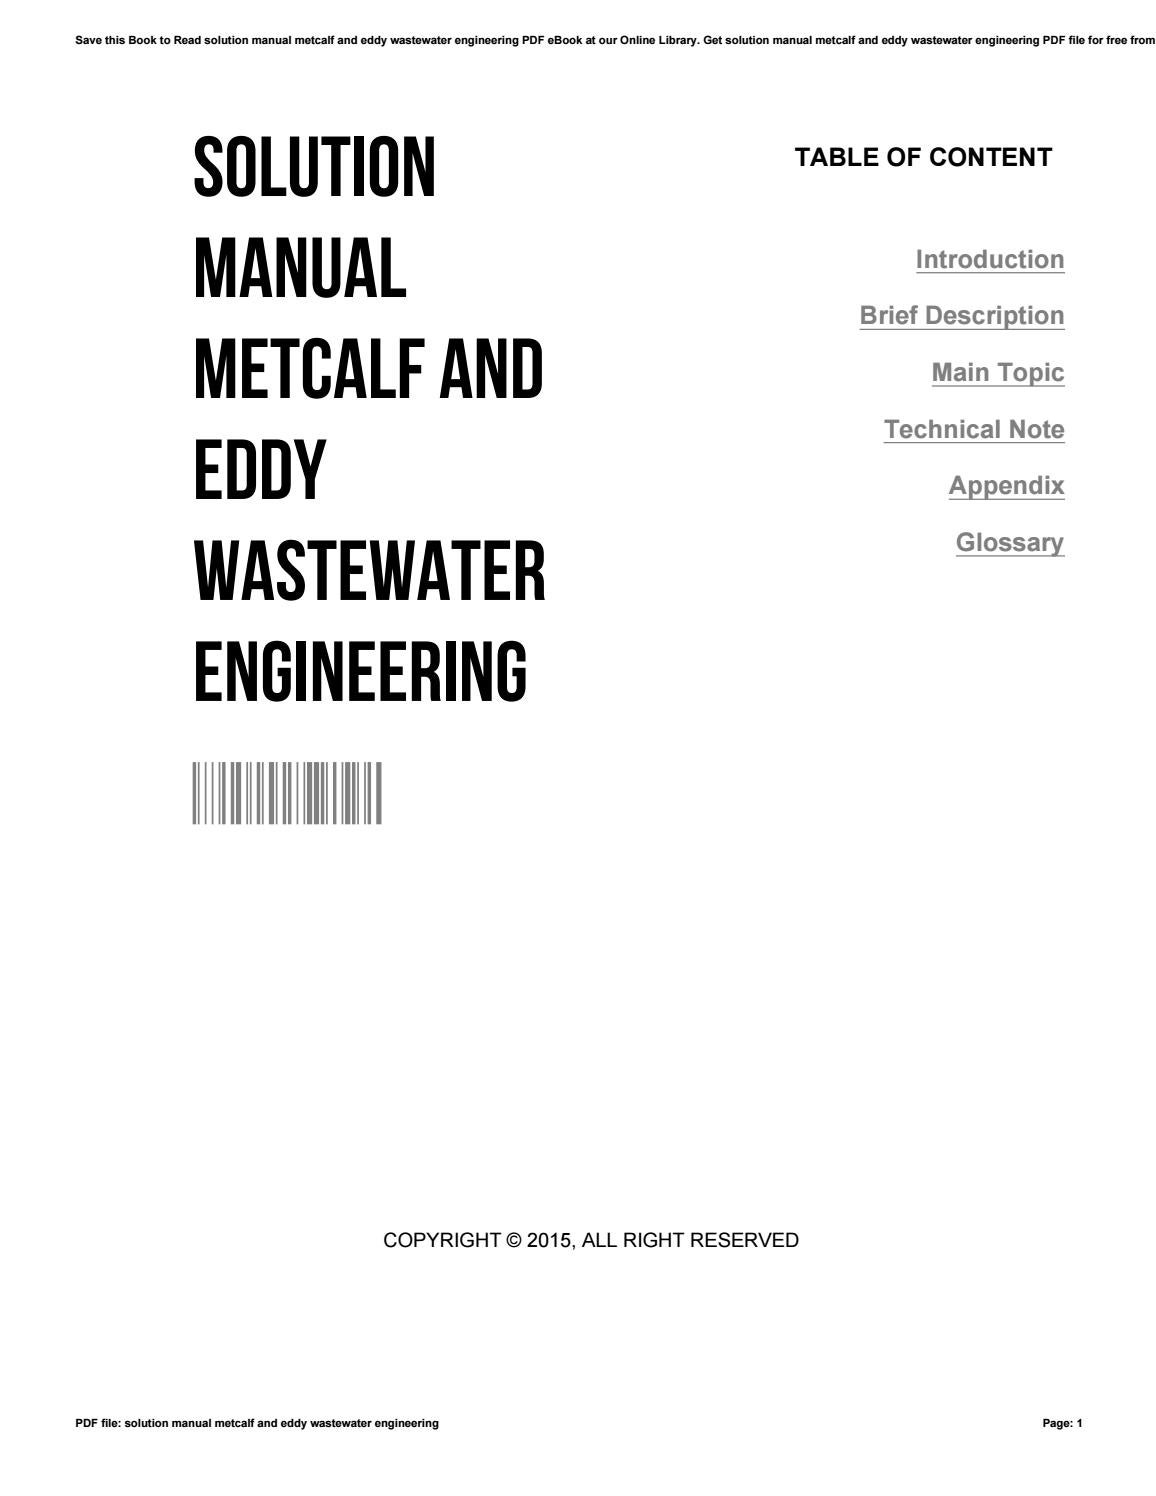 Solution manual metcalf and eddy wastewater engineering by